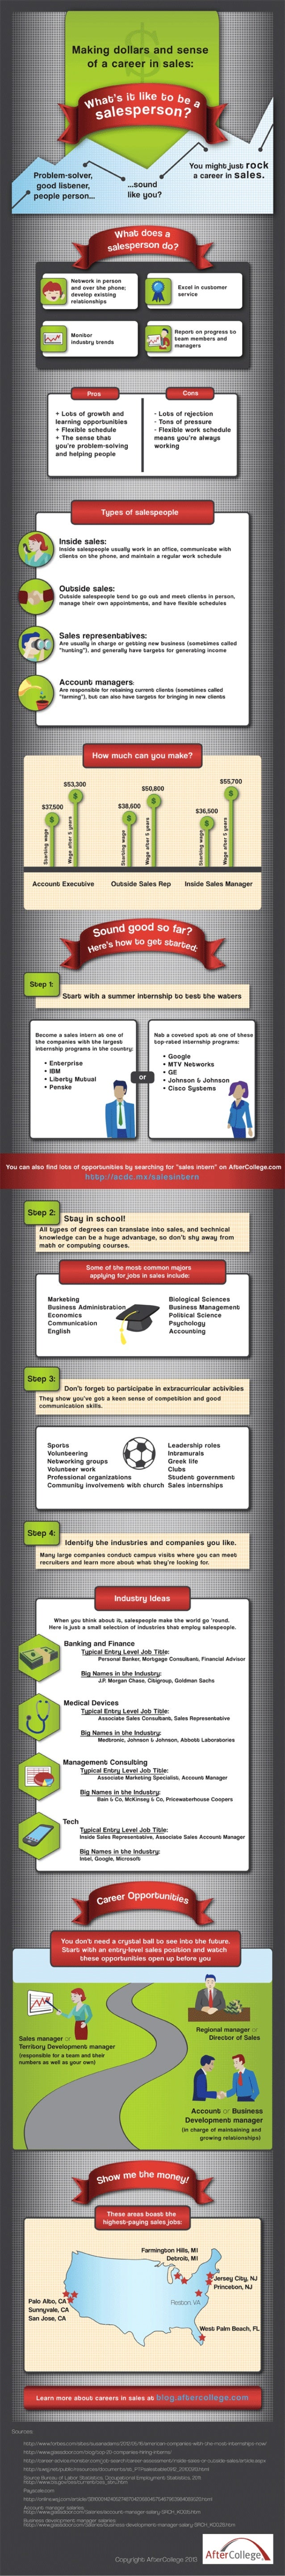 Making Dollars & Sense of a Career in Sales: Infographic